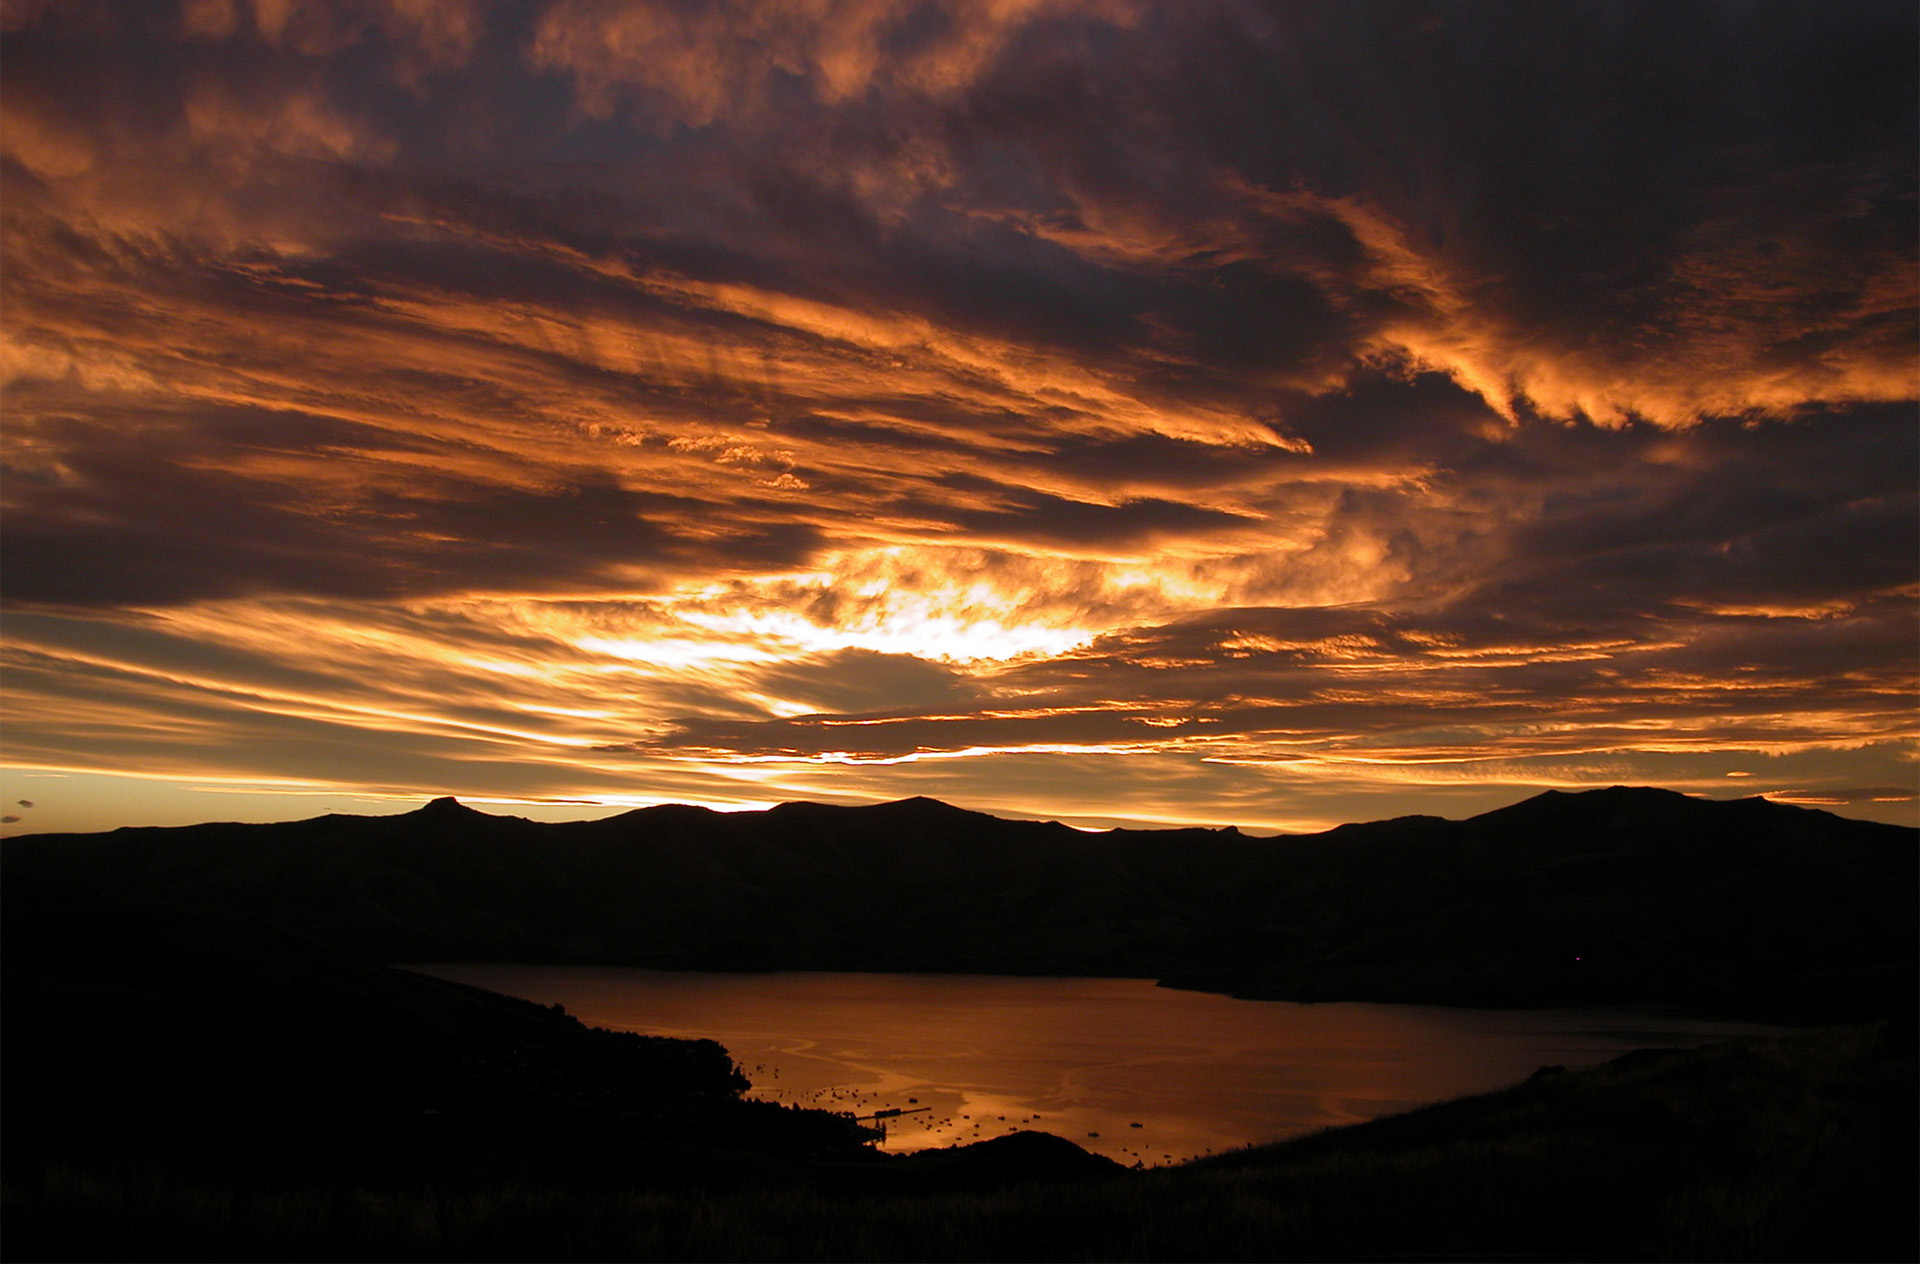 Sunset over Akaroa in New Zealand's South Island.